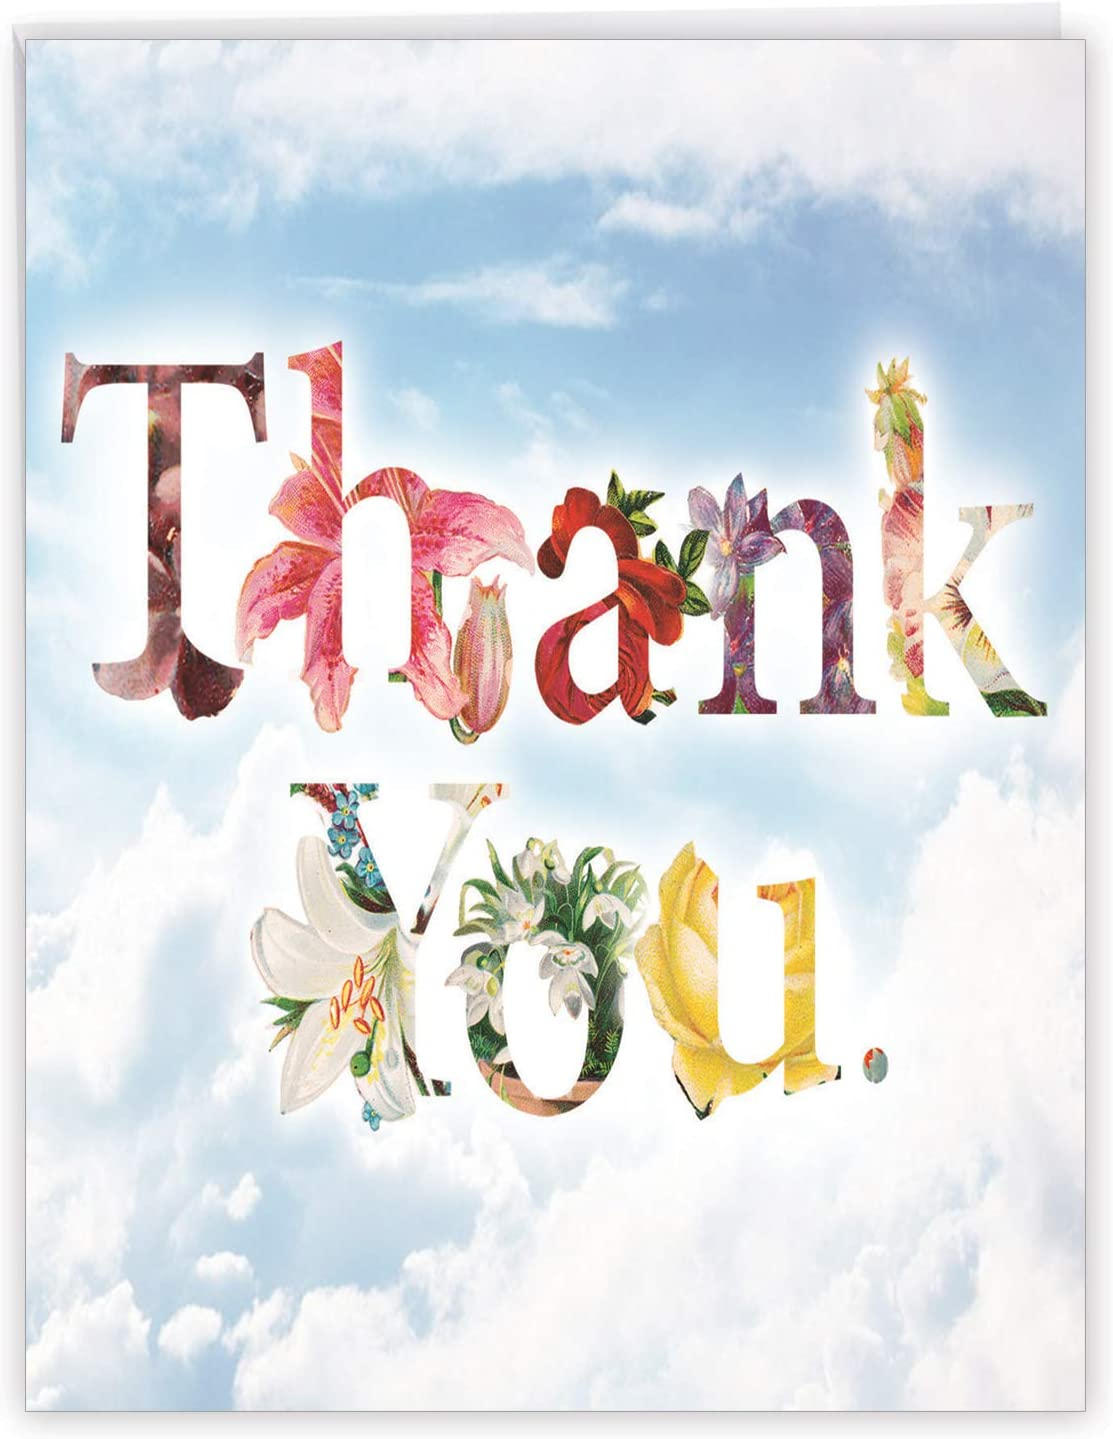 Thank You Notecard 1 in 8 Billion Greeting Card Thank You Greeting Card Thank You Friendship Card Funny Thank You Card